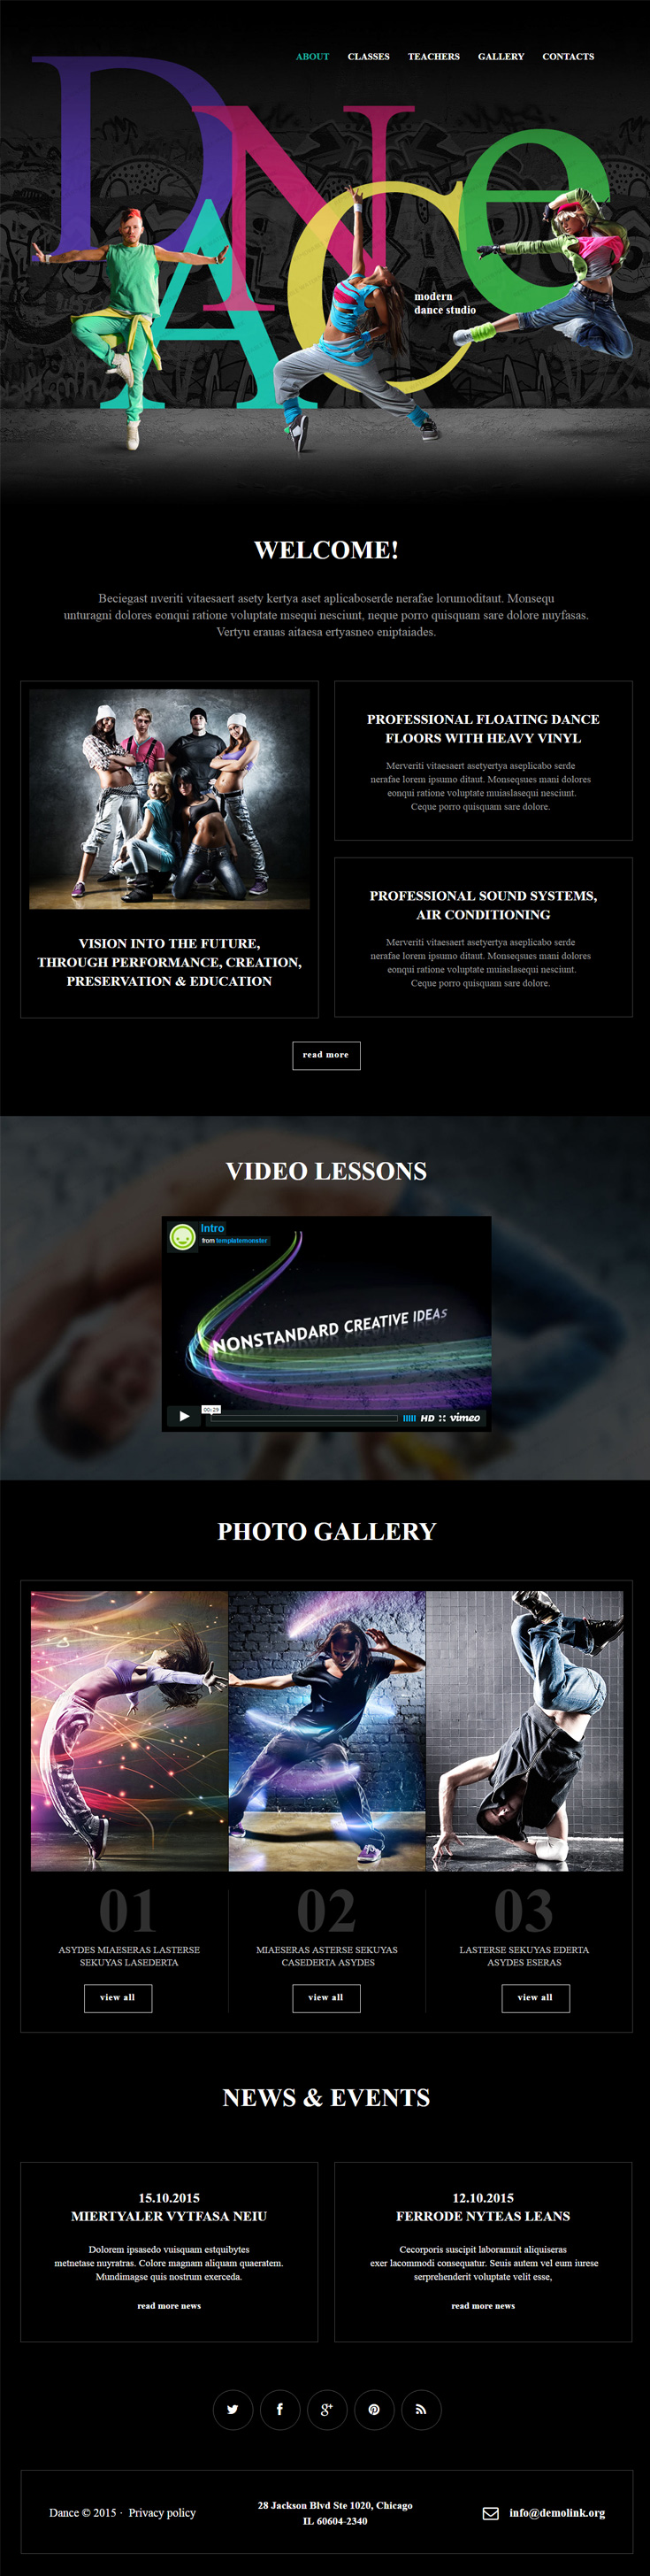 Muse as your cms then night club is top recommendation take a look